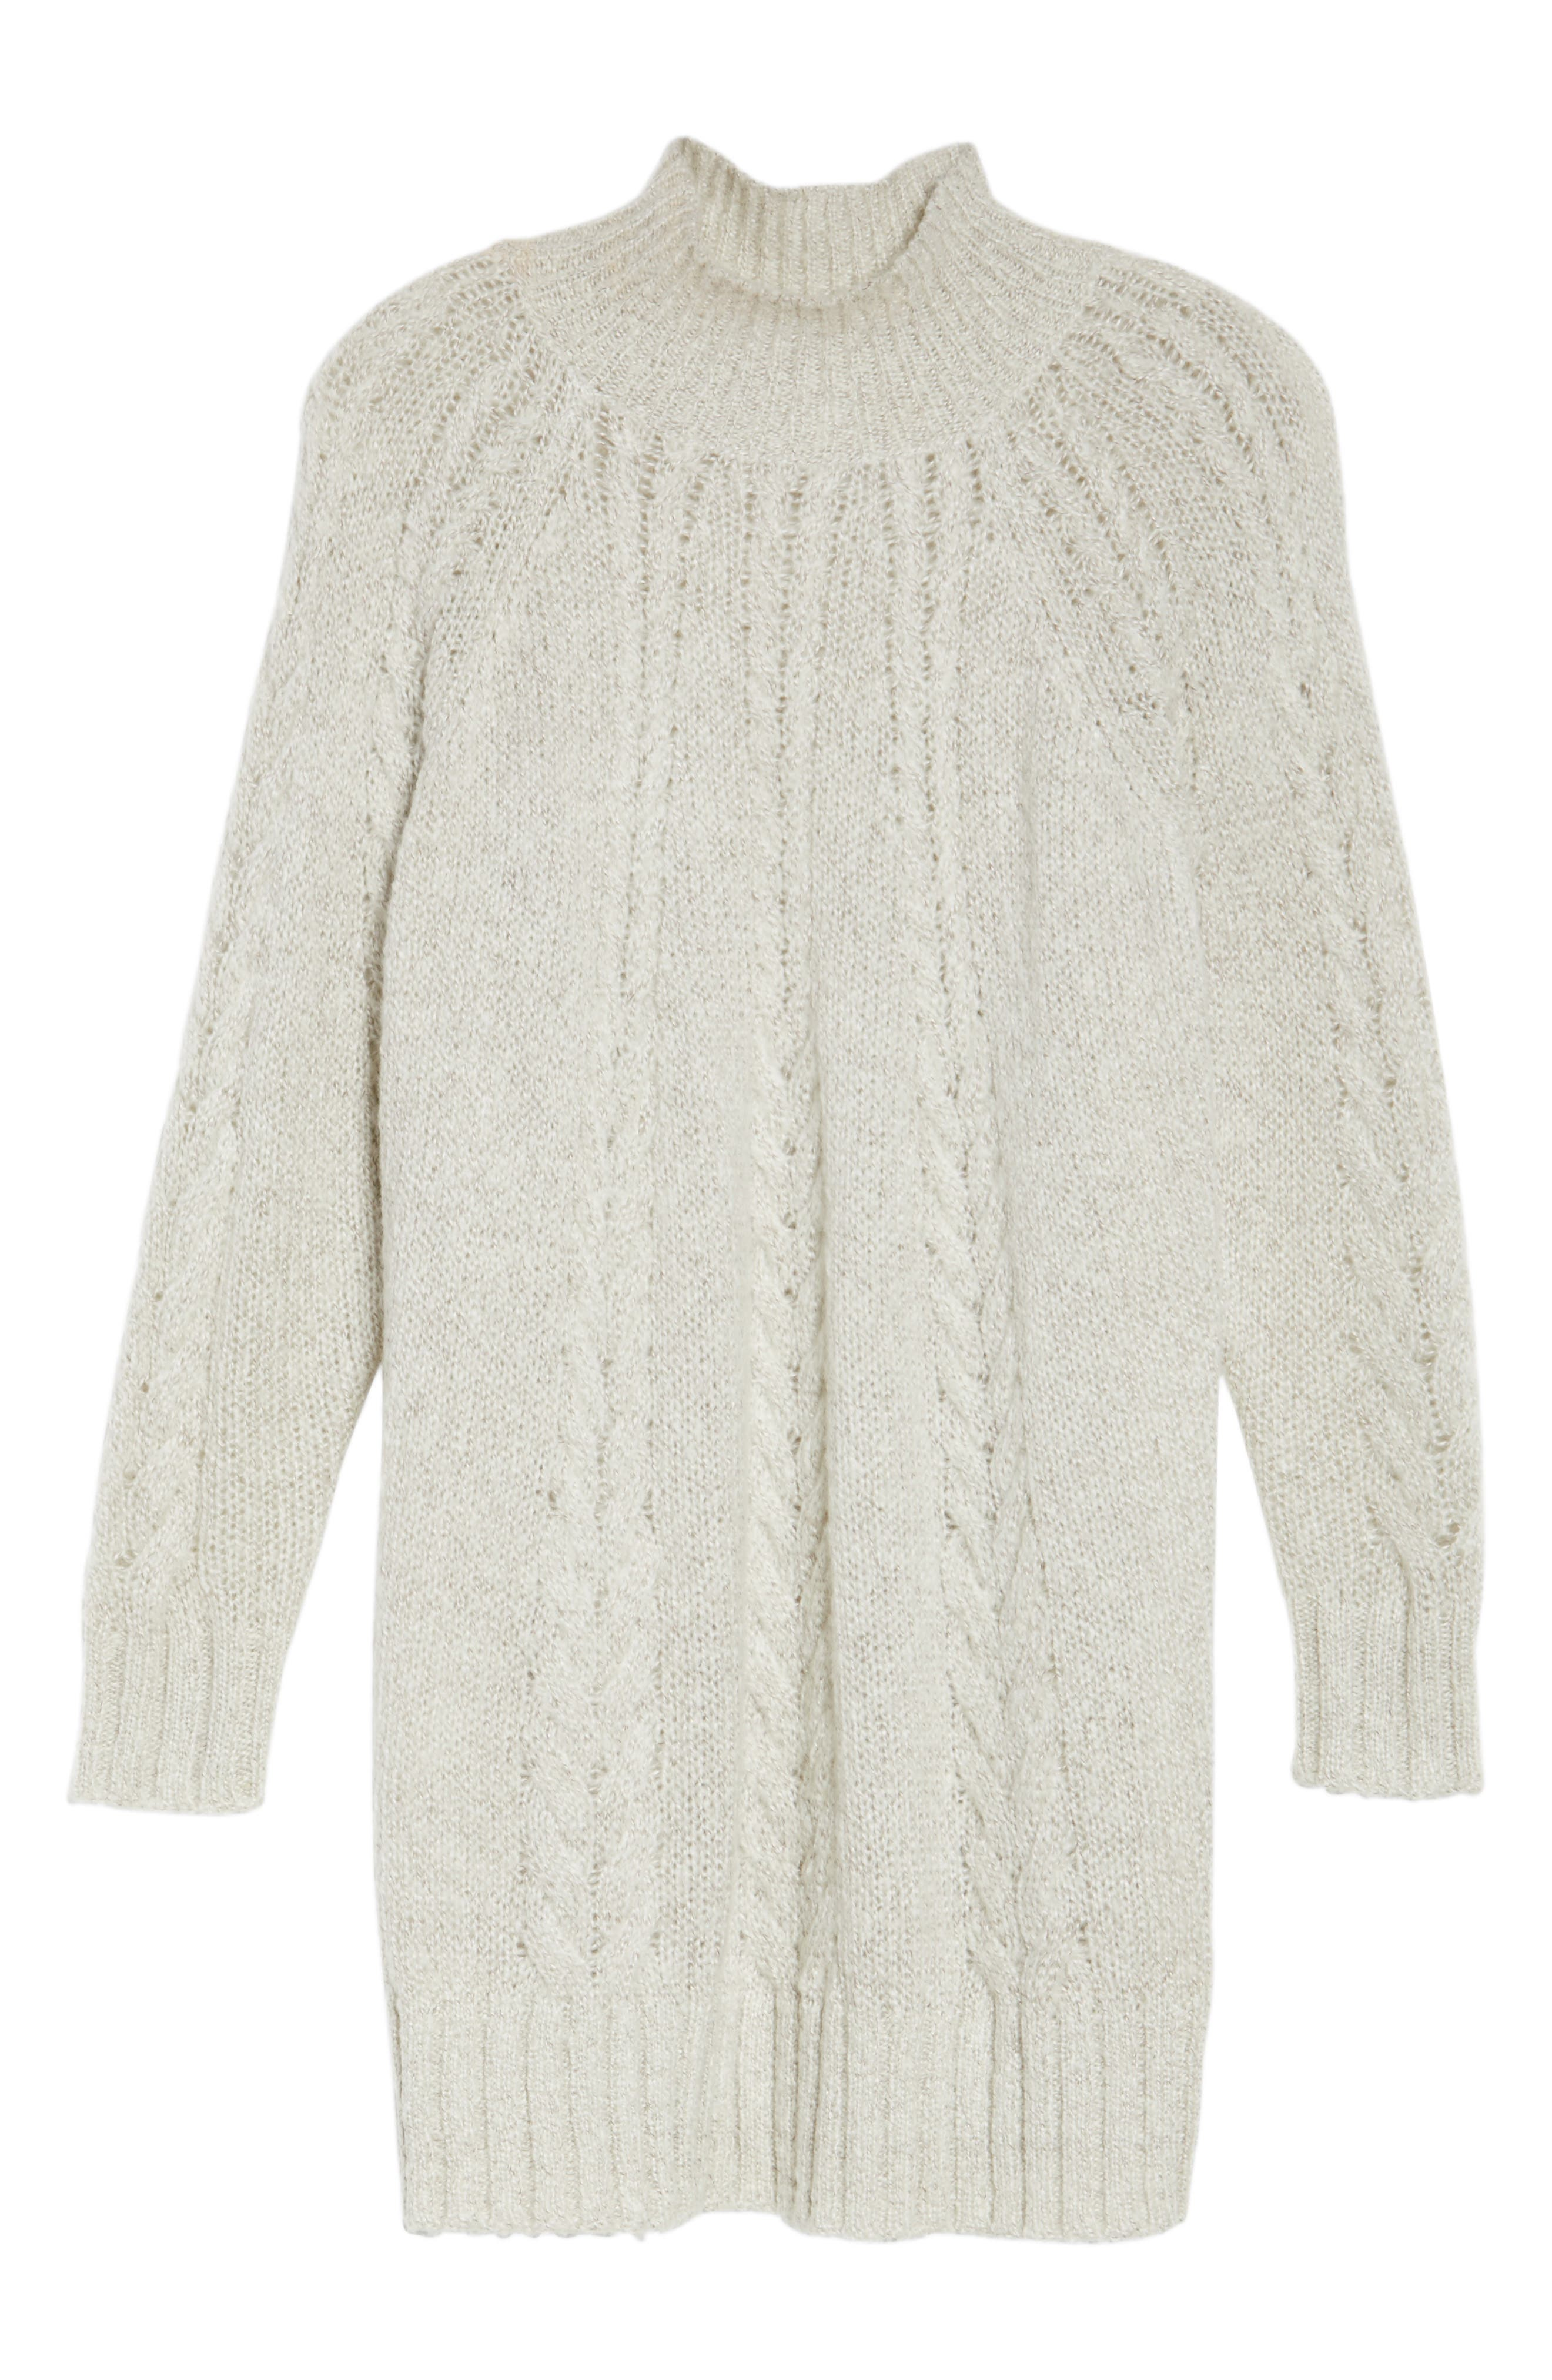 Cable Knit Tunic Sweater,                             Alternate thumbnail 6, color,                             BEIGE OATMEAL LIGHT HEATHER